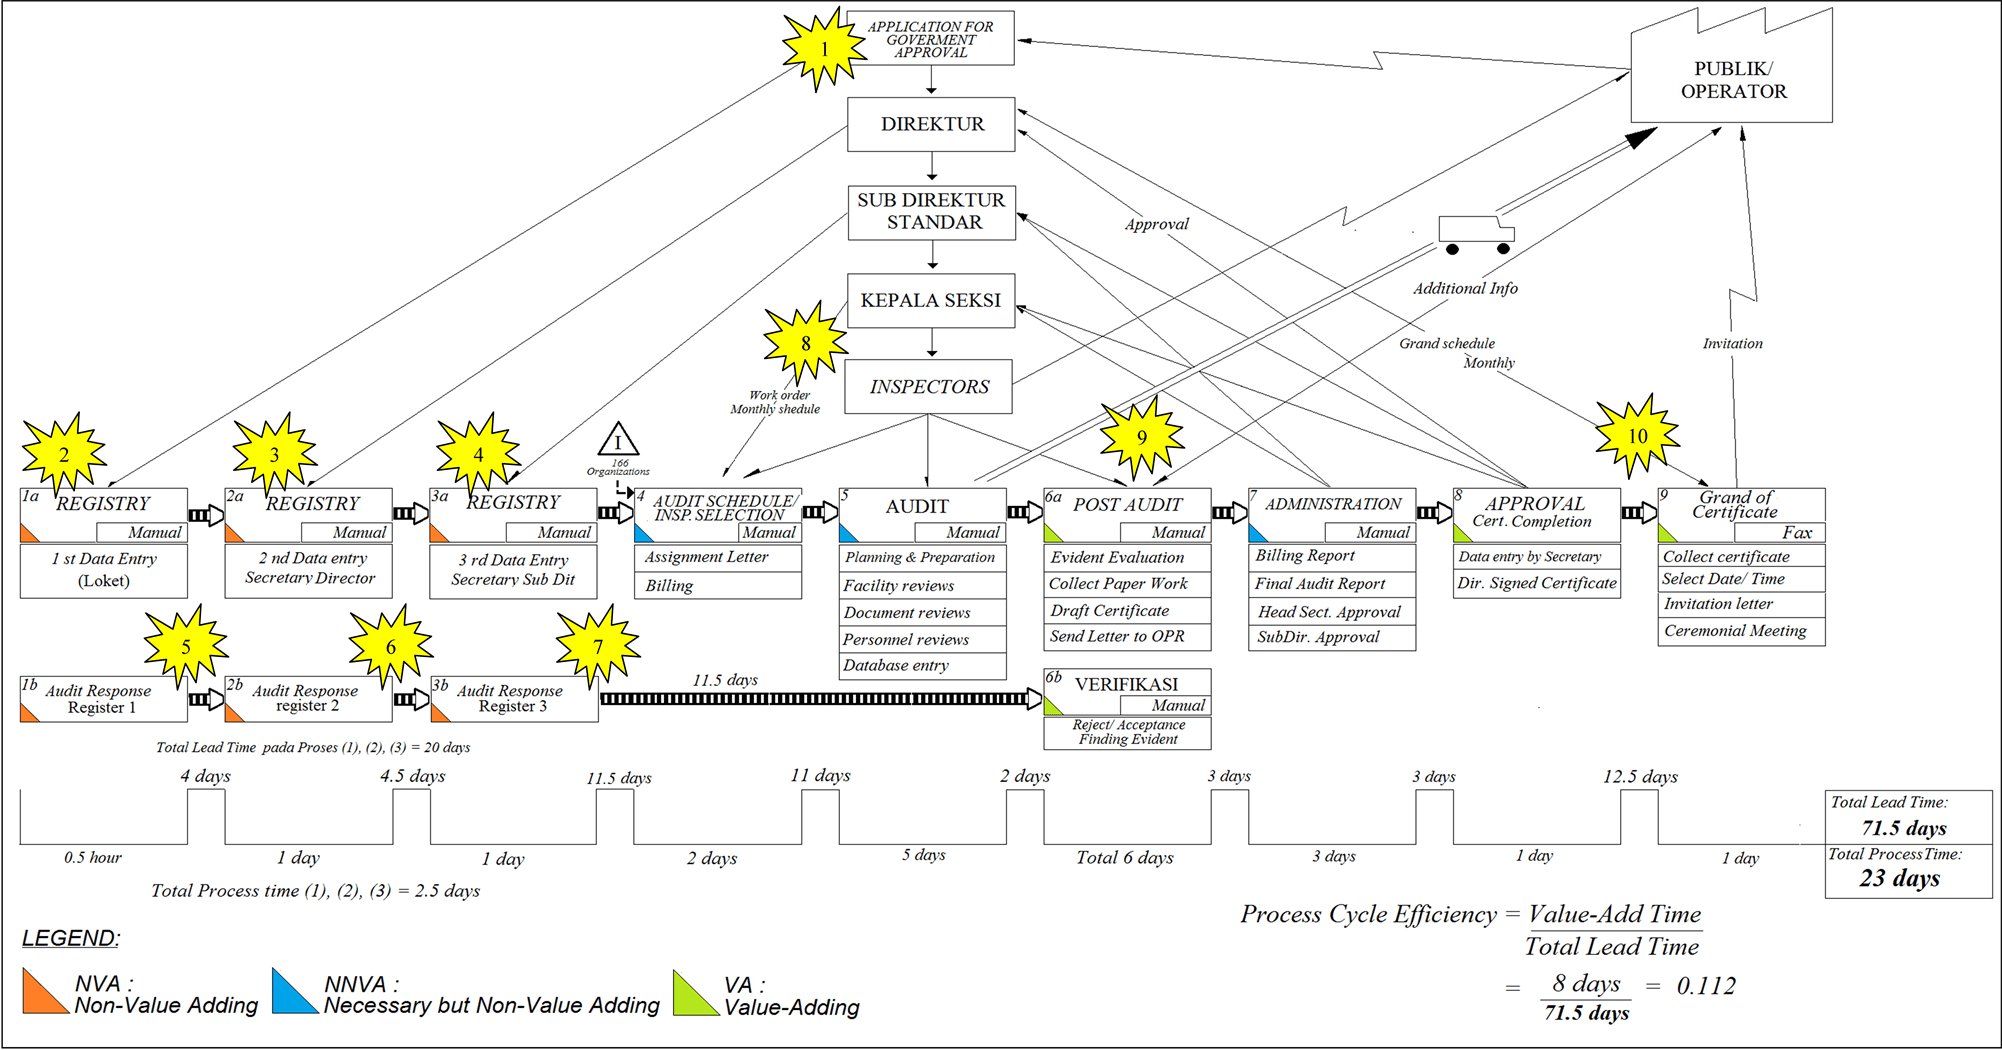 process flow diagram visio 2010